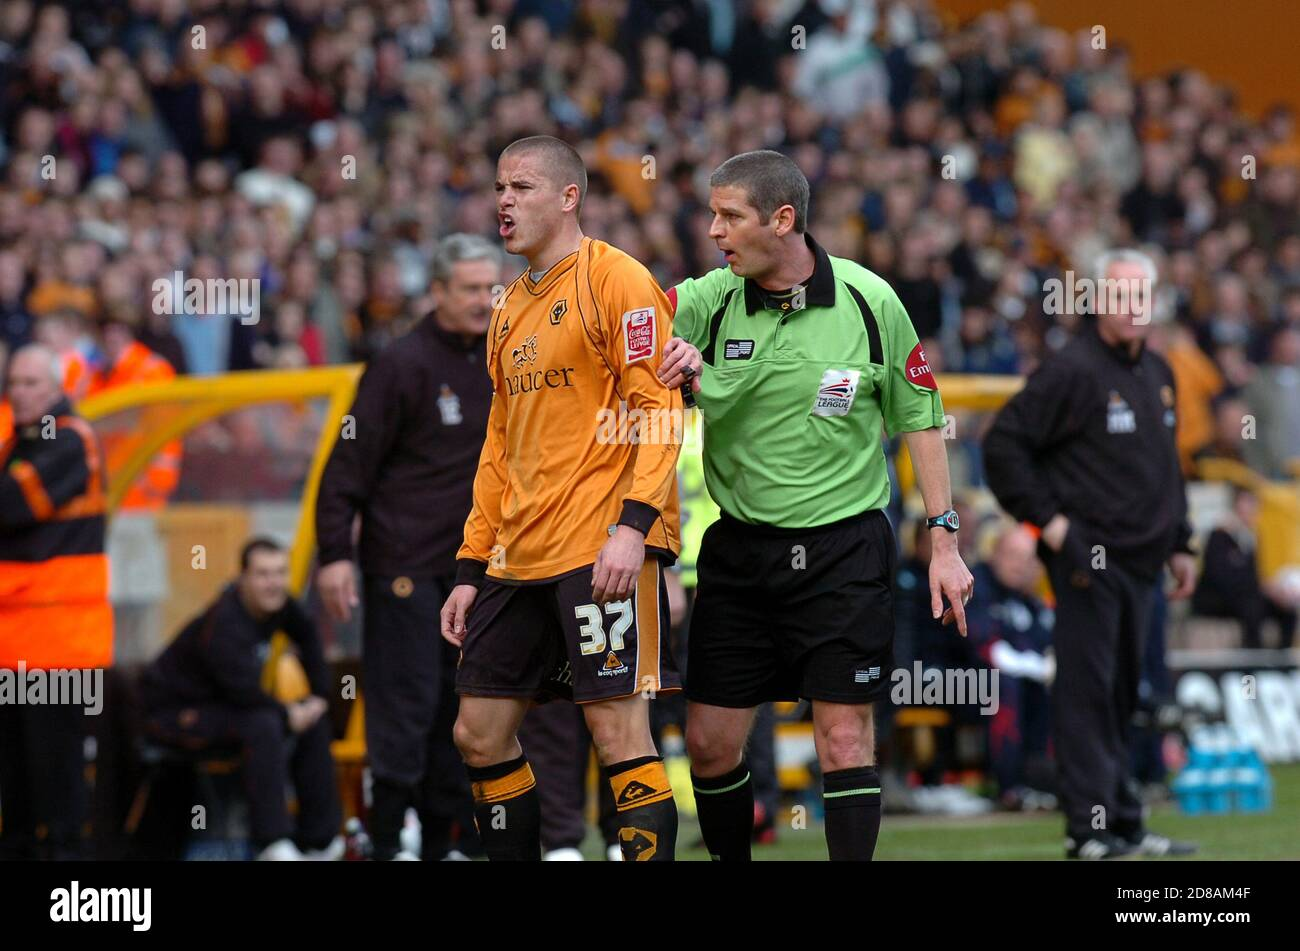 Wolverhampton Wanderers v West Bromwich Albion, 11 March 2007 at Molineux. Michael Kightly and referee Andy D' Urso Stock Photo